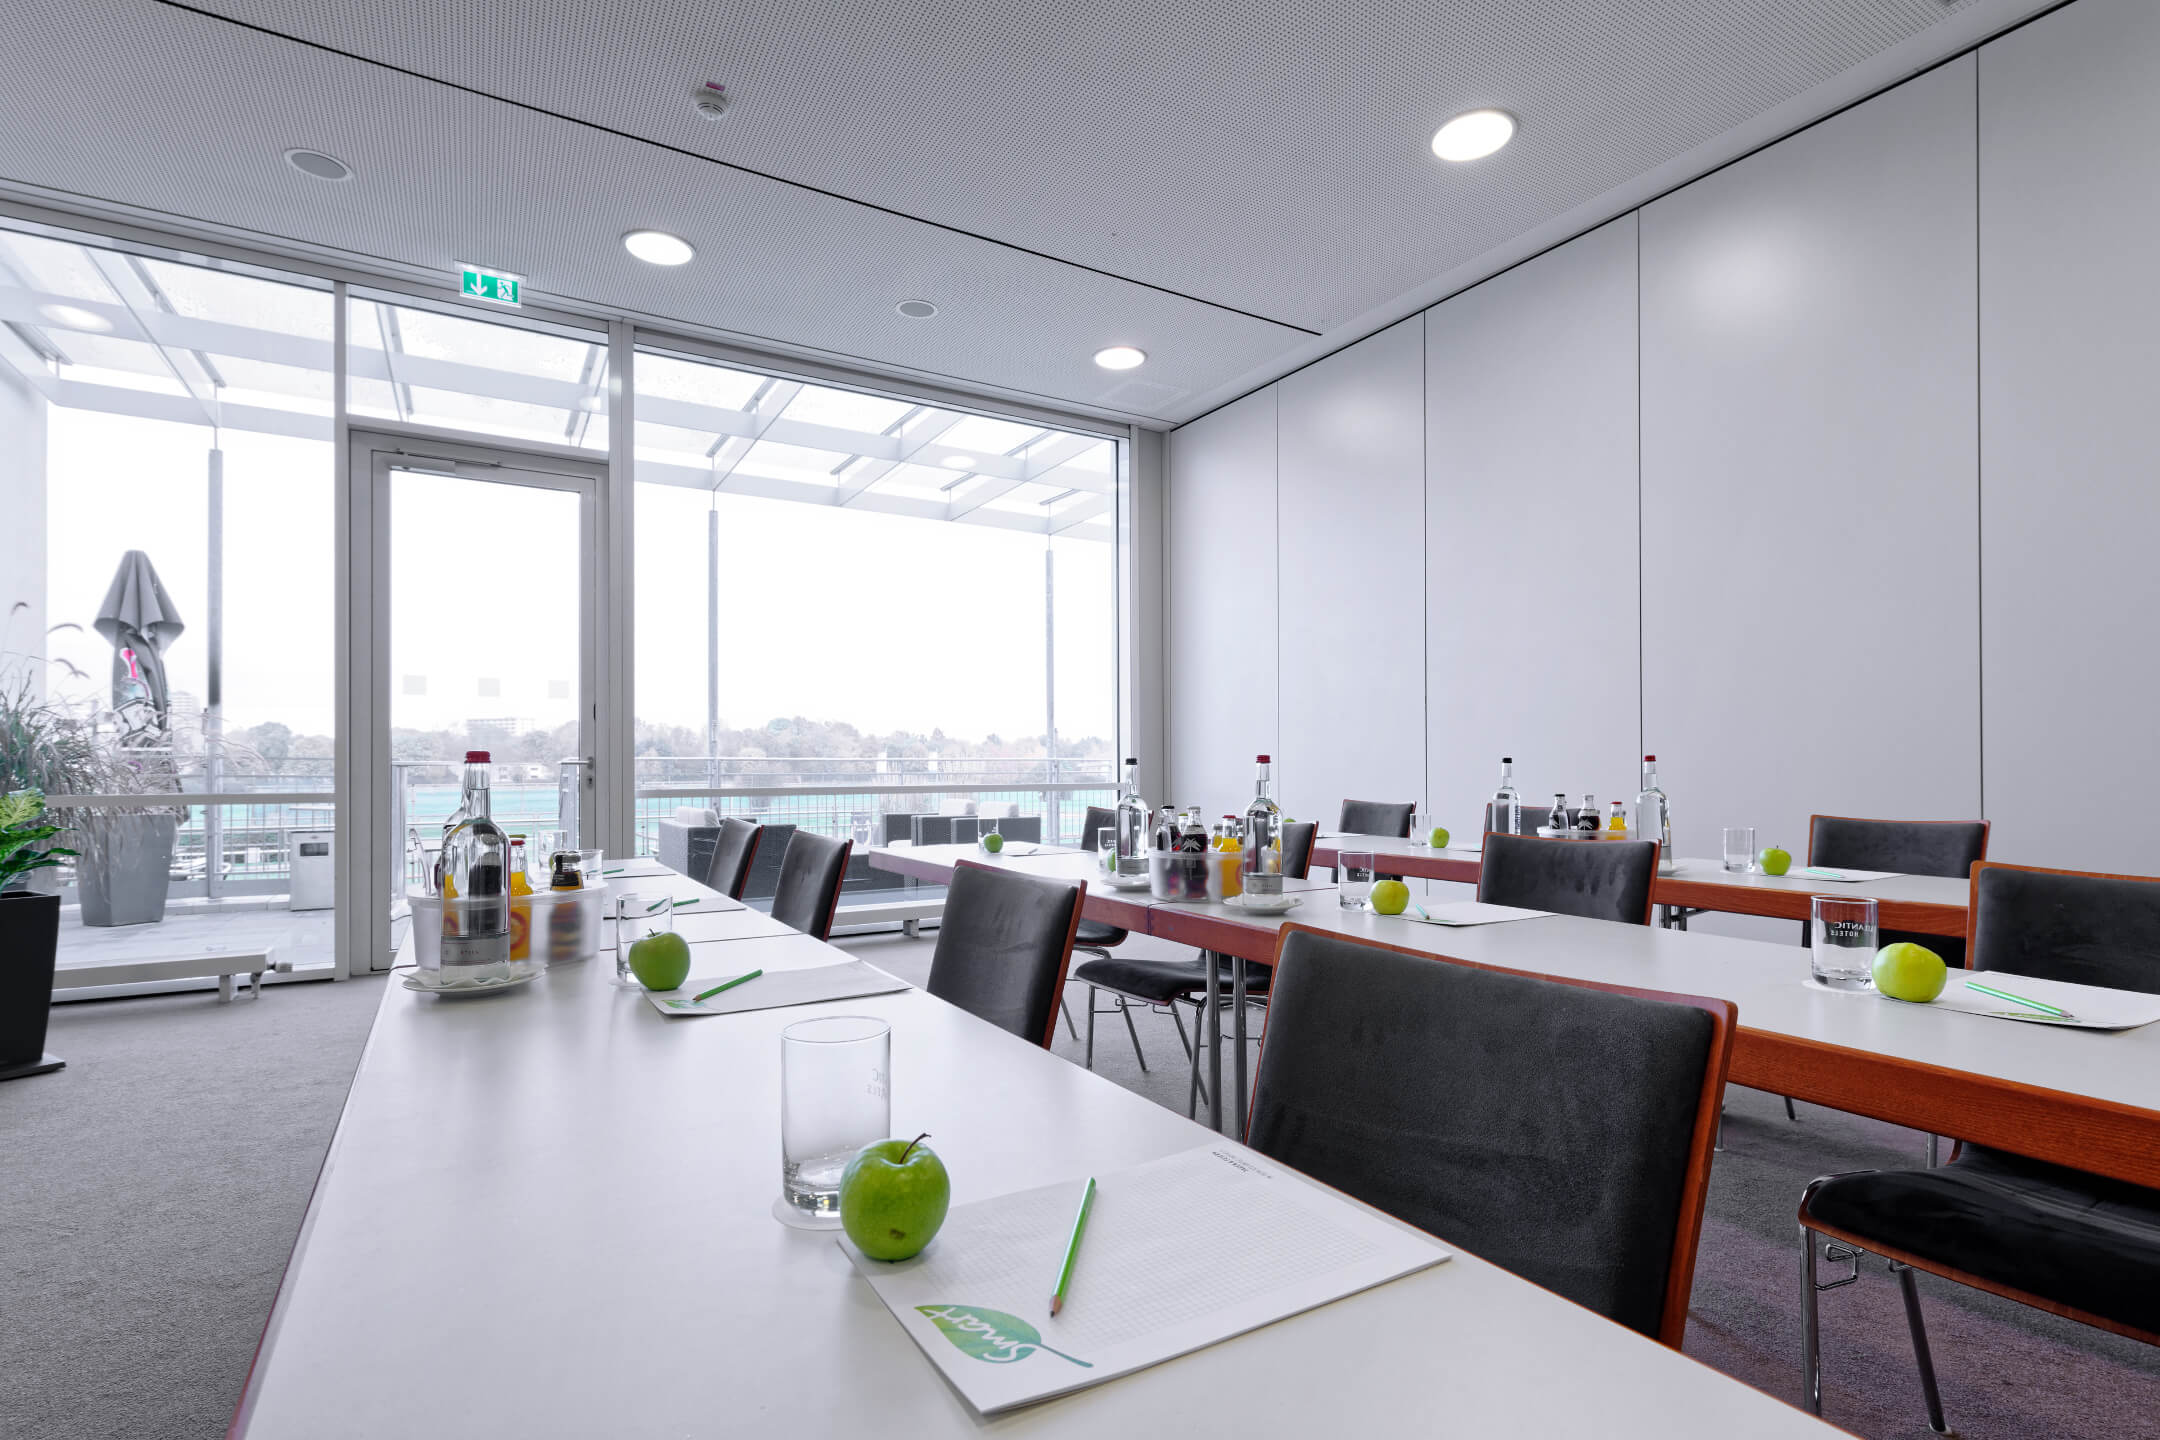 Meeting room with parliamentary seating | ATLANTIC Hotel Galopprennbahn Bremen